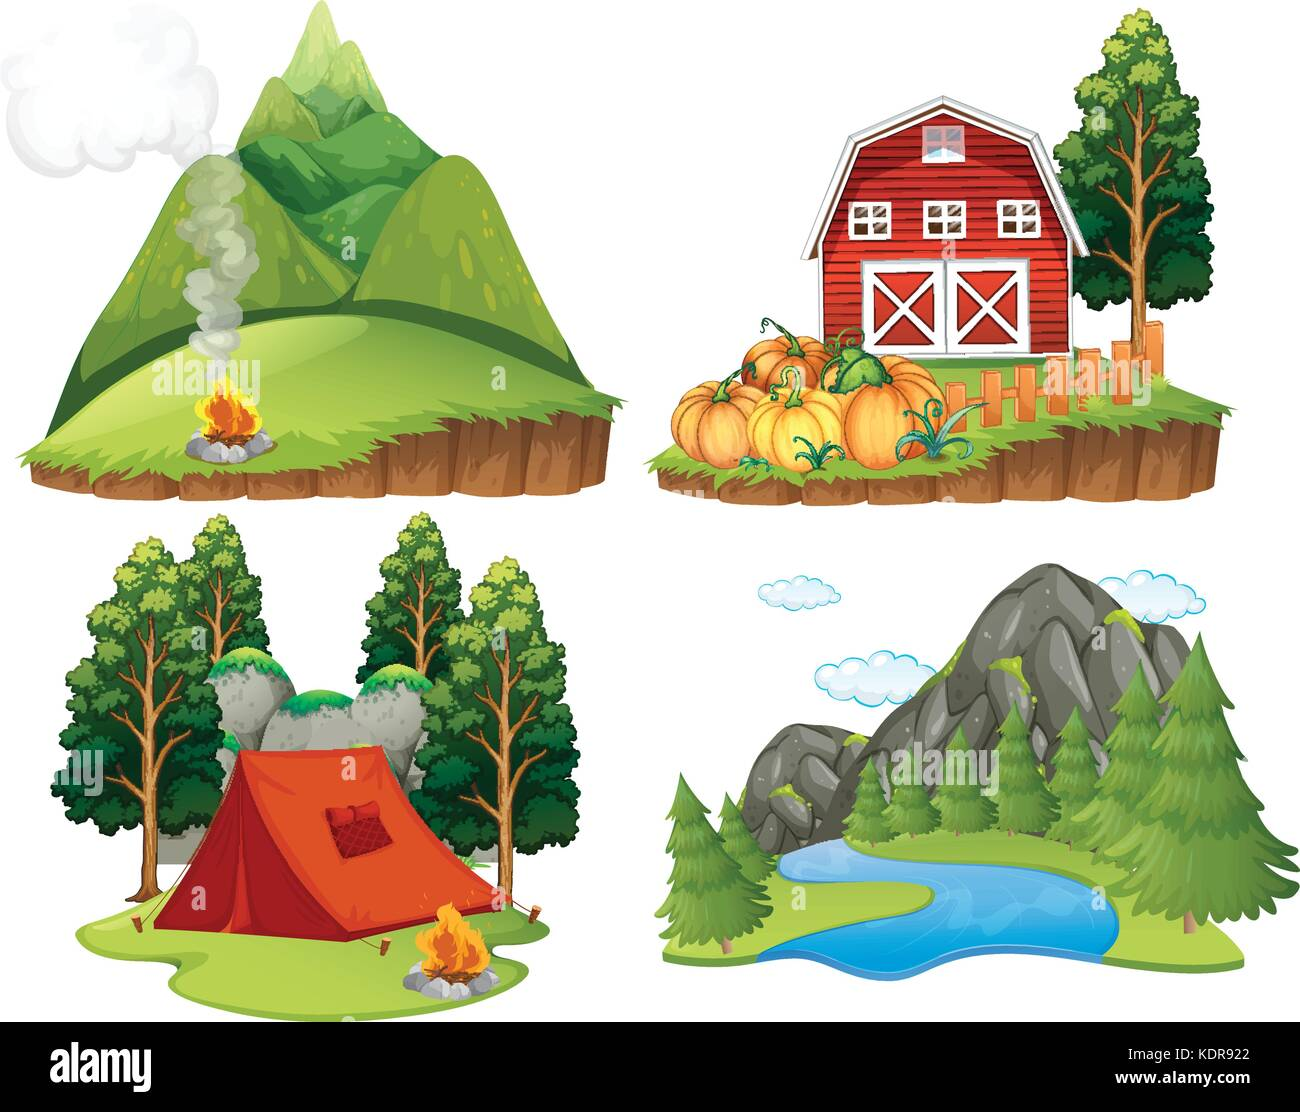 Four nature scenes on white background illustration - Stock Vector